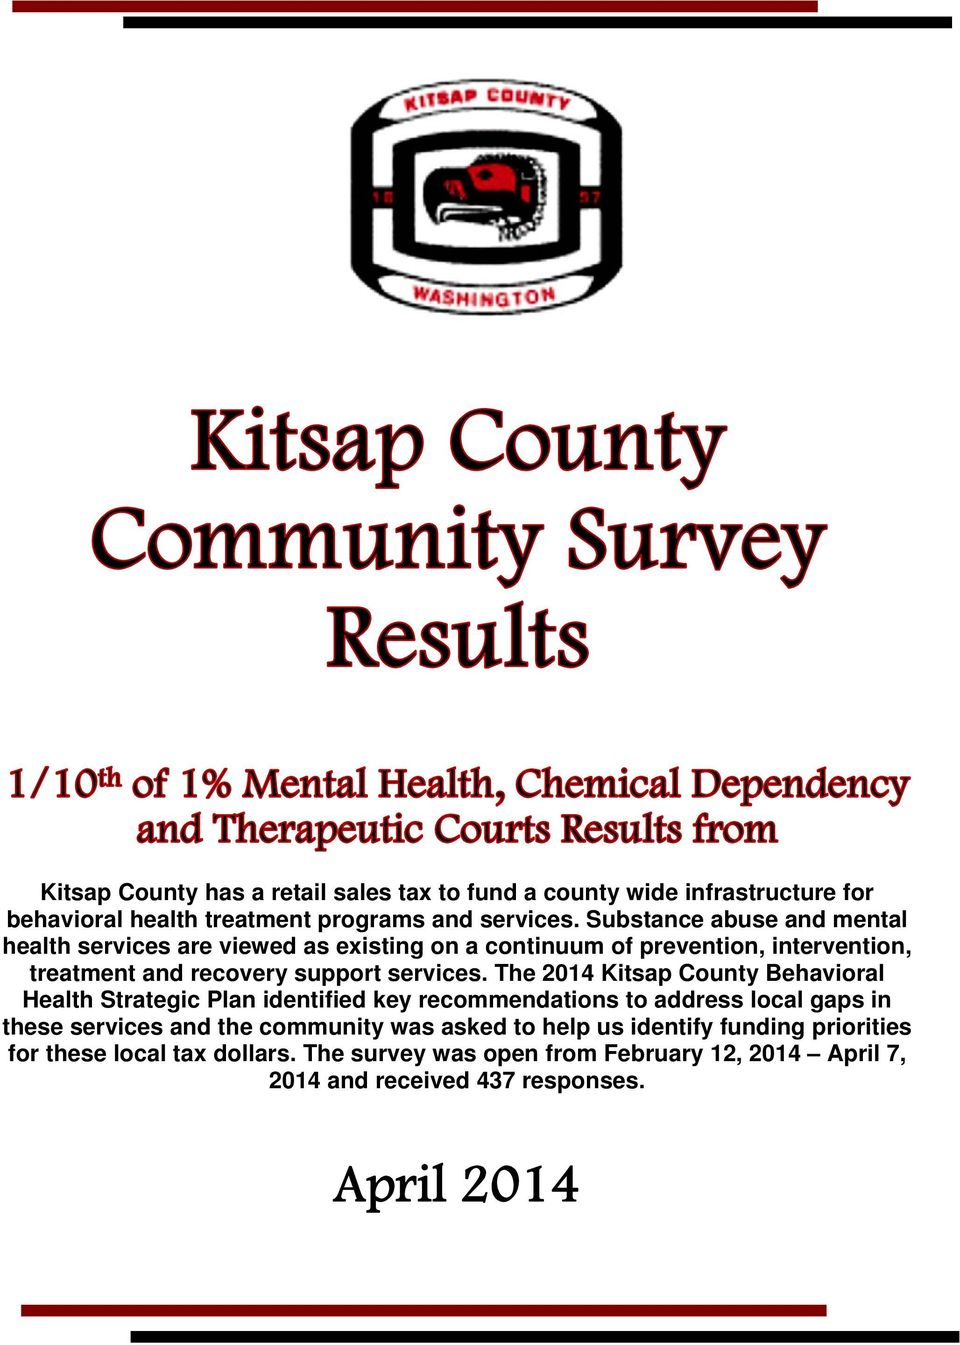 The 2014 Kitsap County Behavioral Health Strategic Plan identified key recommendations to address local gaps in these services and the community was